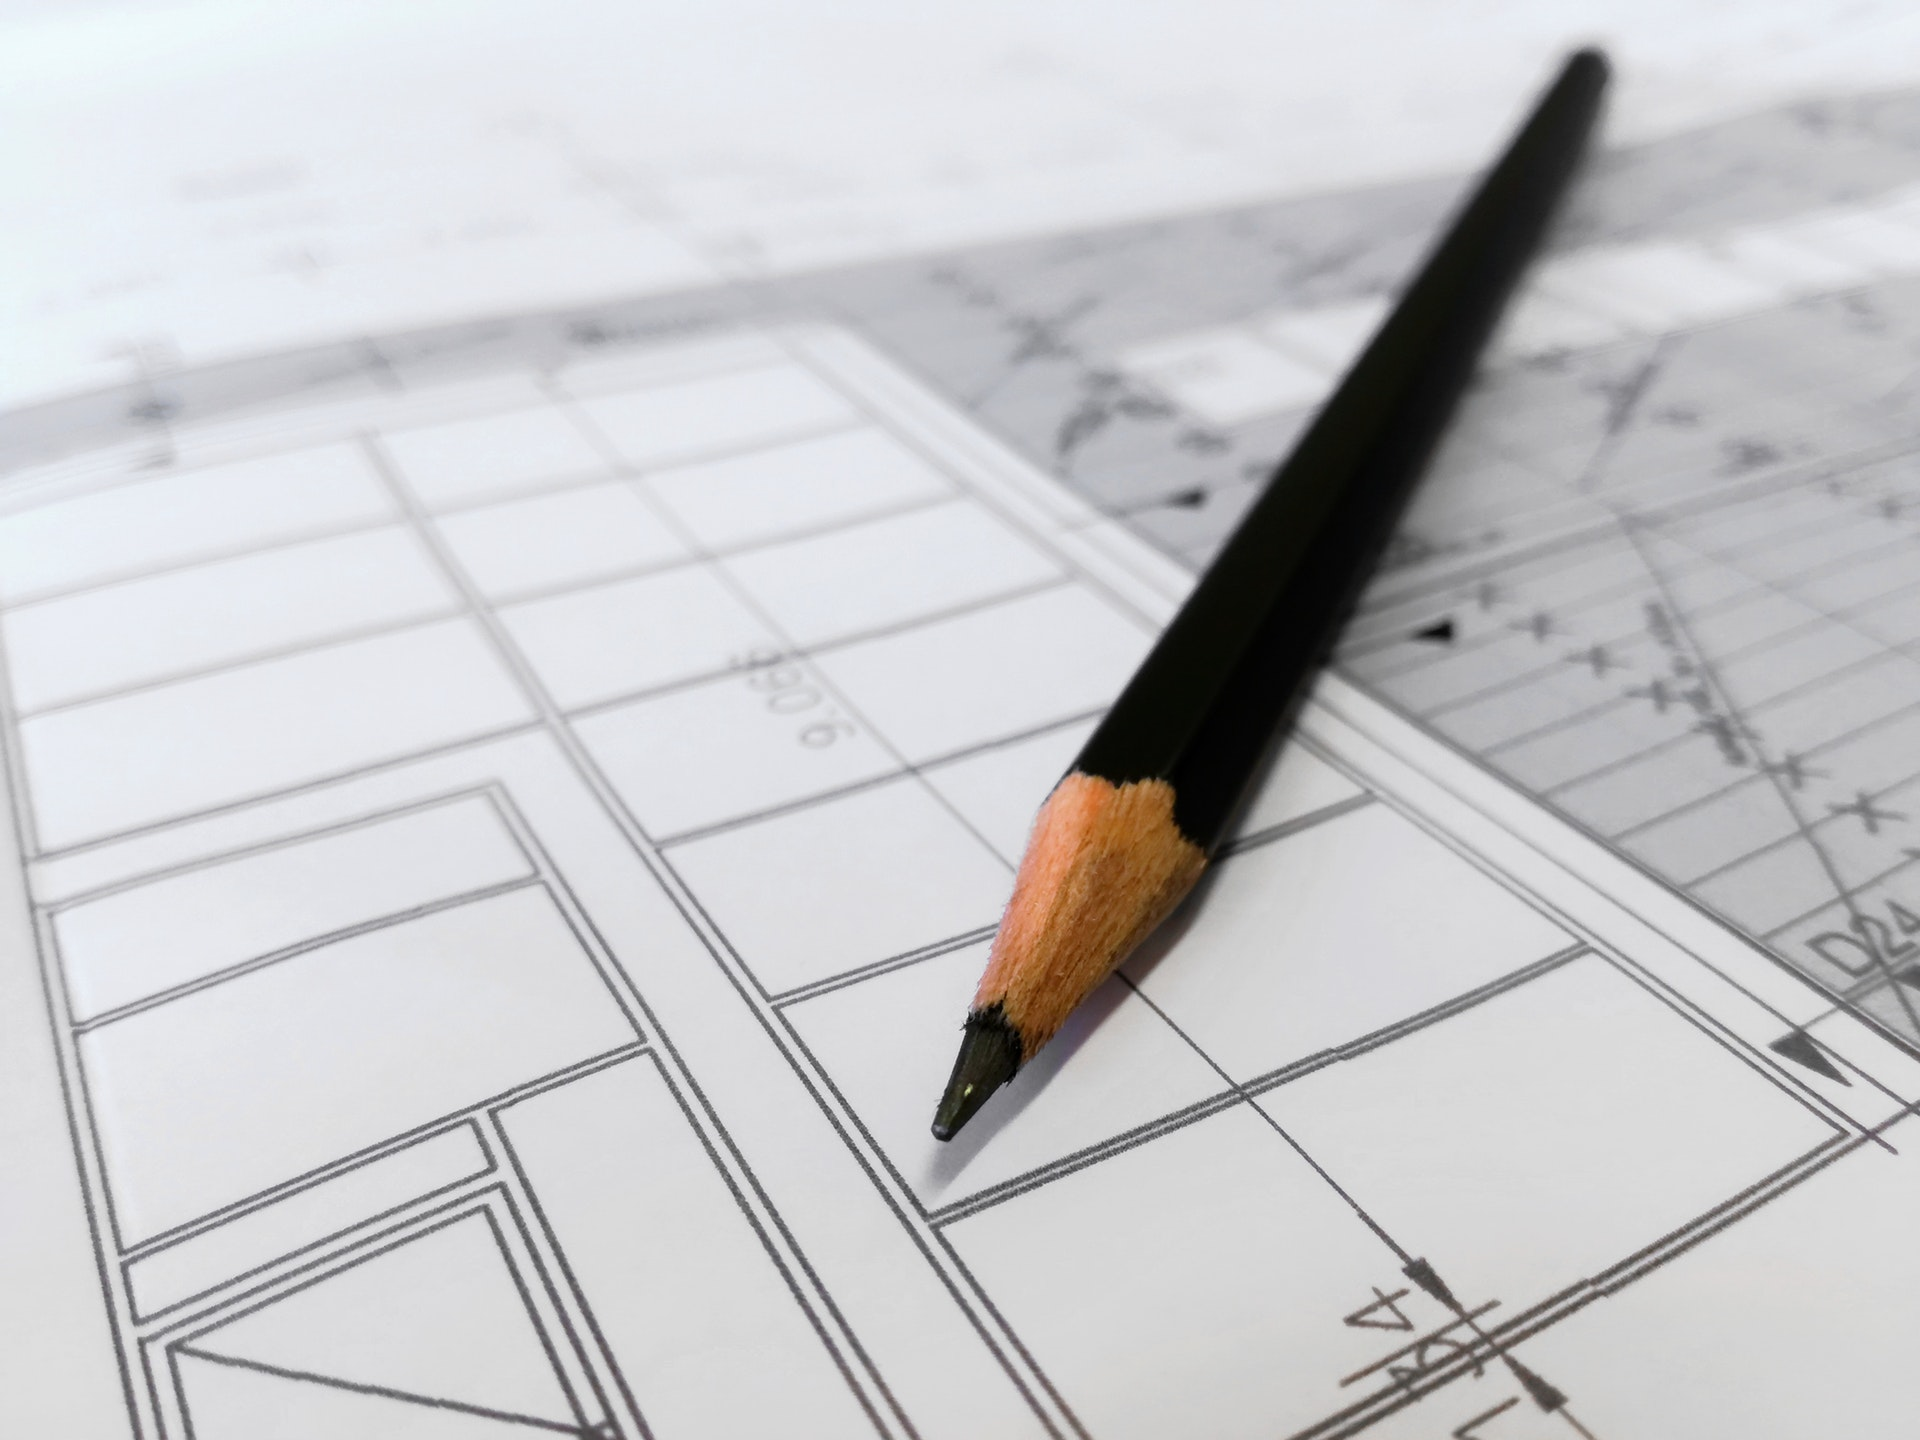 Picture of pencil on architect designs